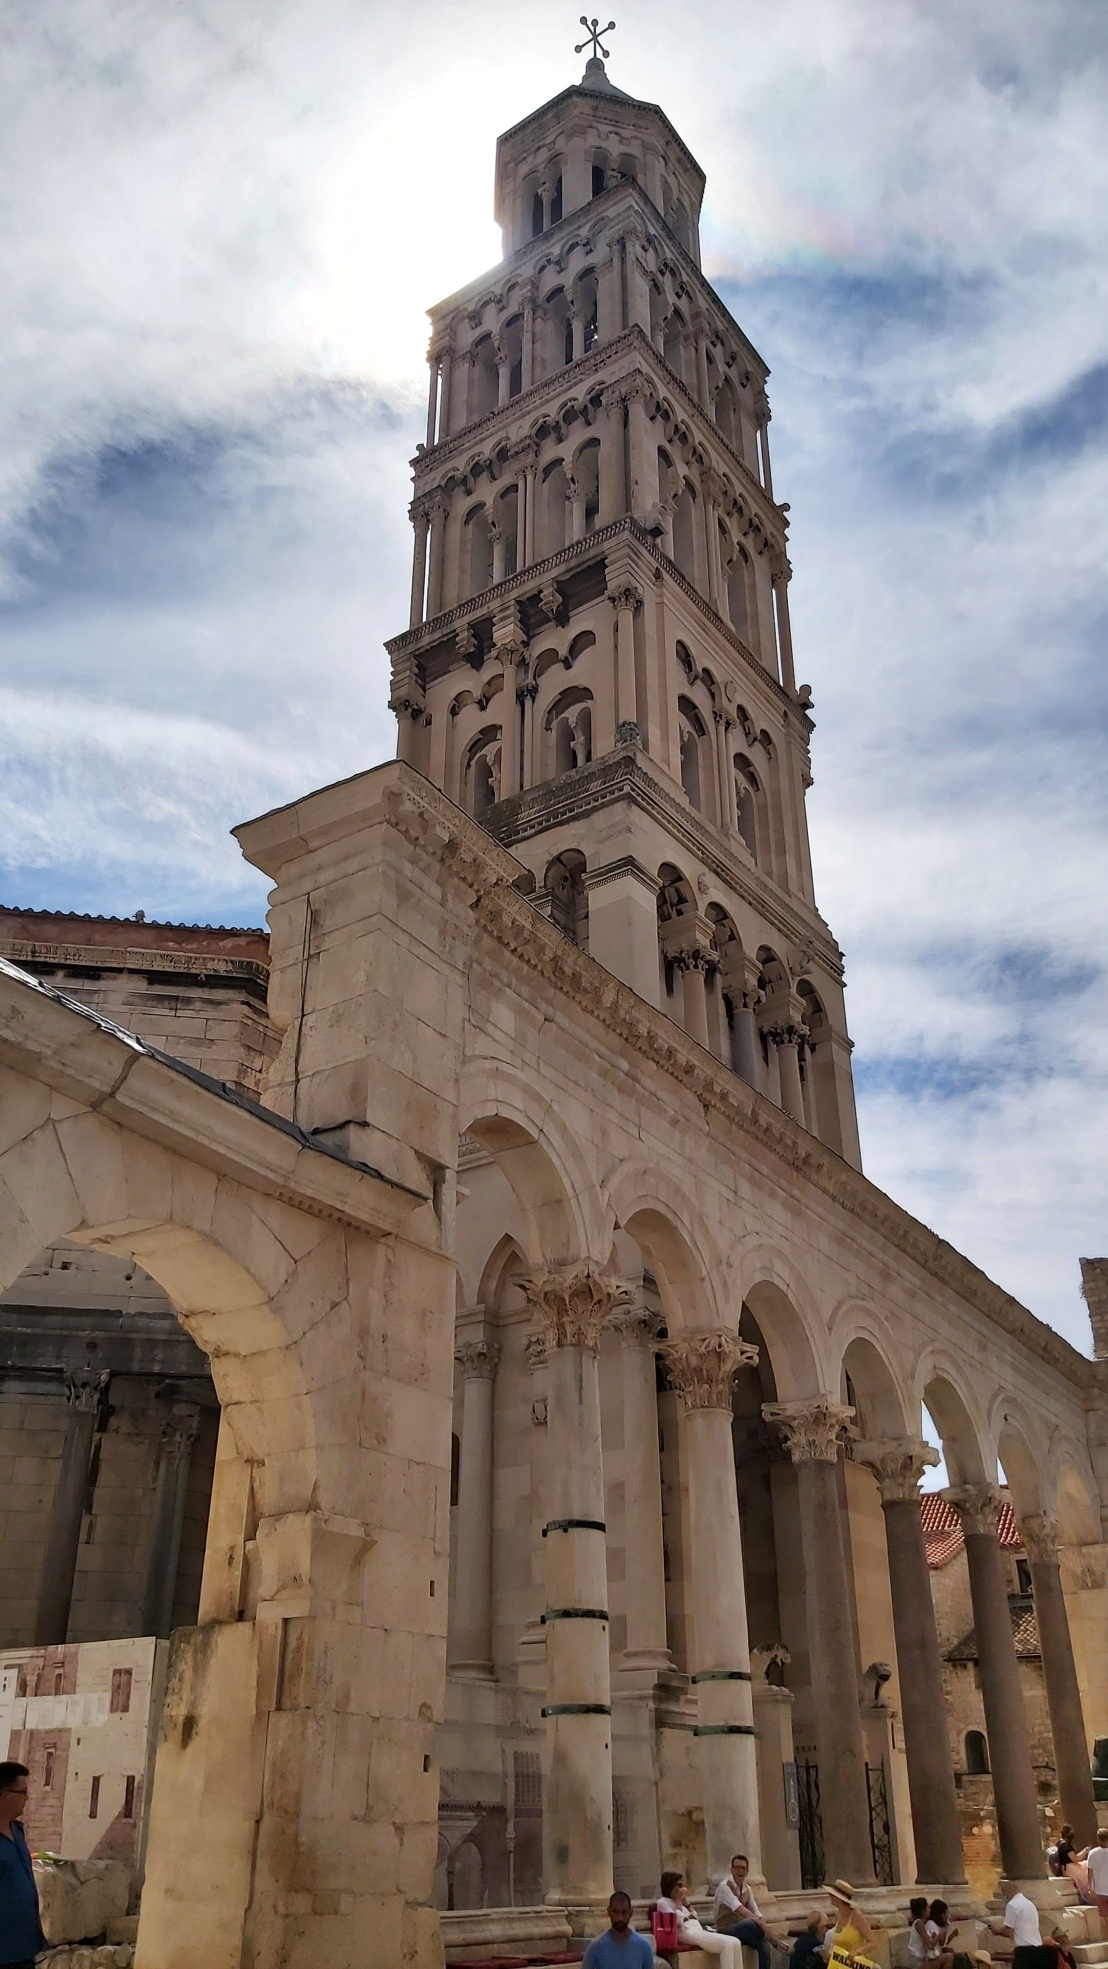 The tower of the cathedral of Diocletian's Palace in Split, Croatia